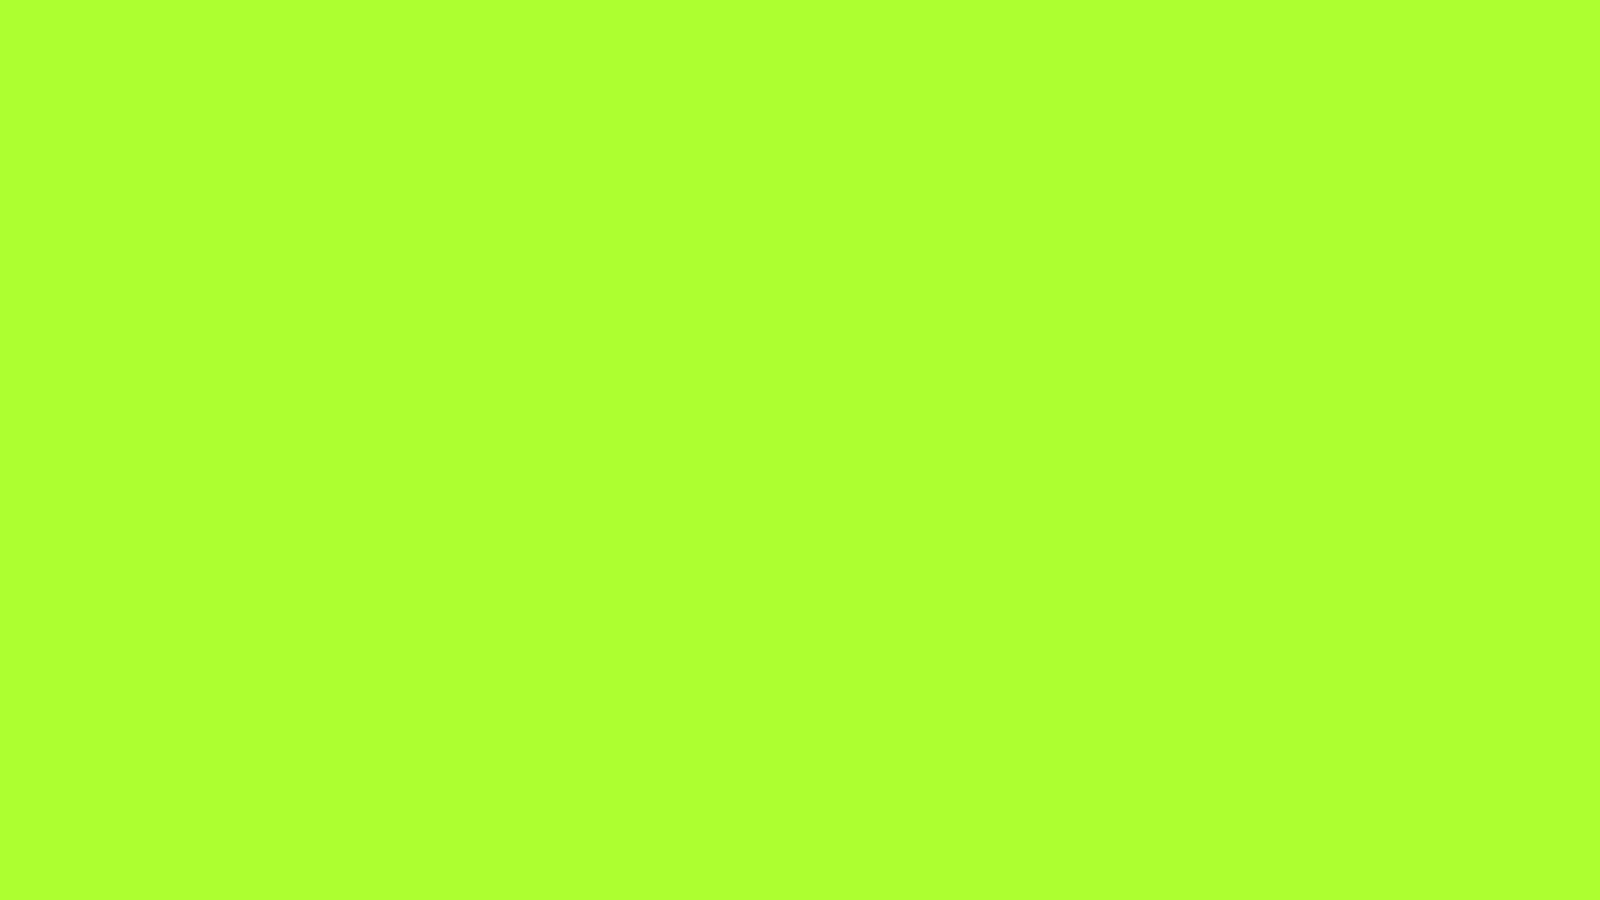 1600x900 Green-yellow Solid Color Background